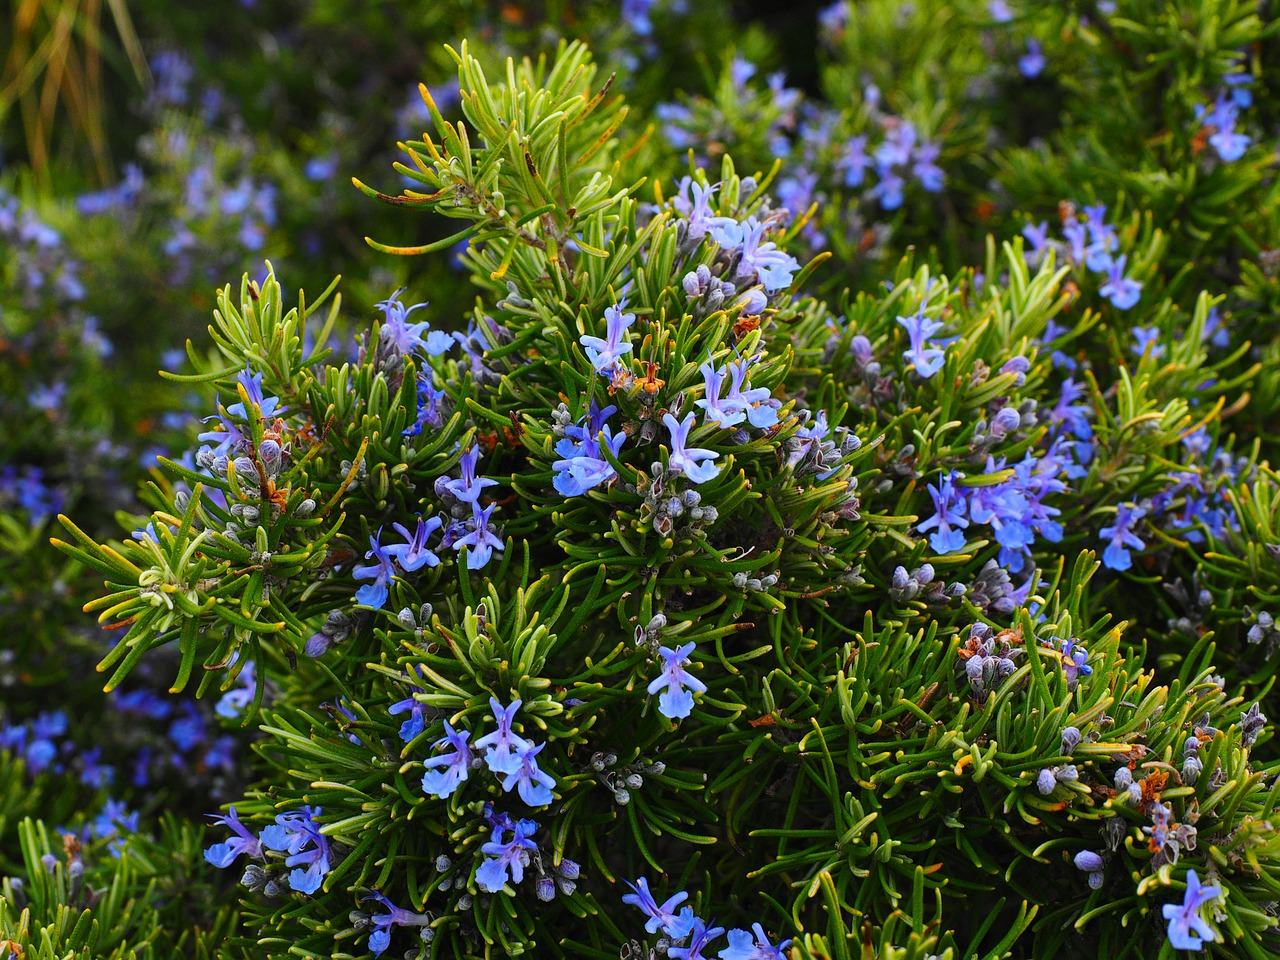 Image: Rosemary extract found to be a powerful anti-hyperglycemic solution for people who have problems with high blood sugar